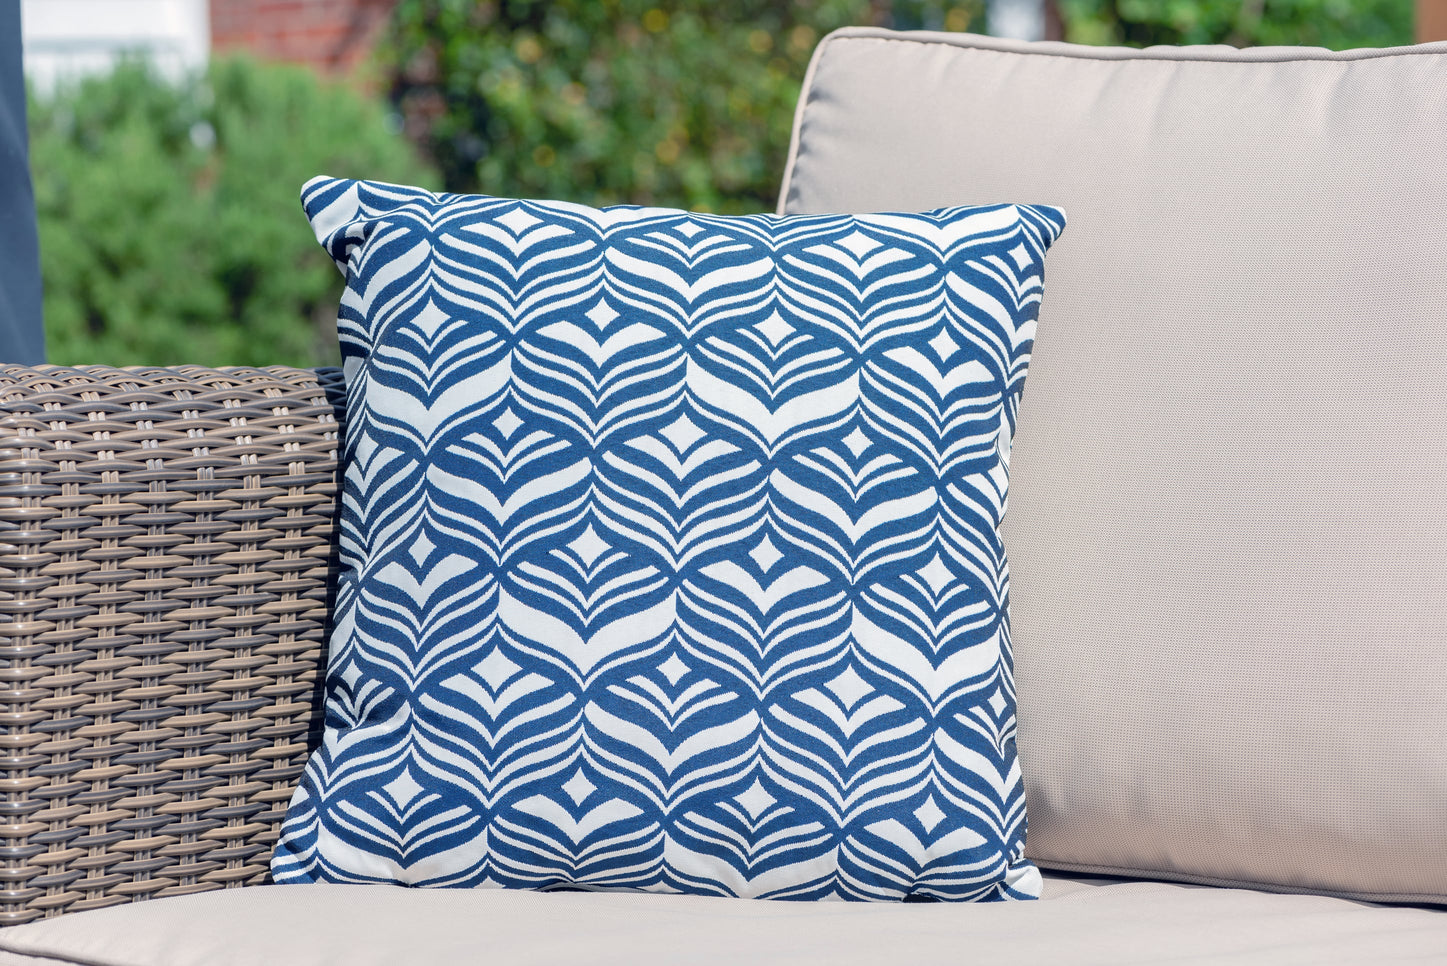 Armadillo Sun waterproof cushion in dark navy blue and white tulip pattern